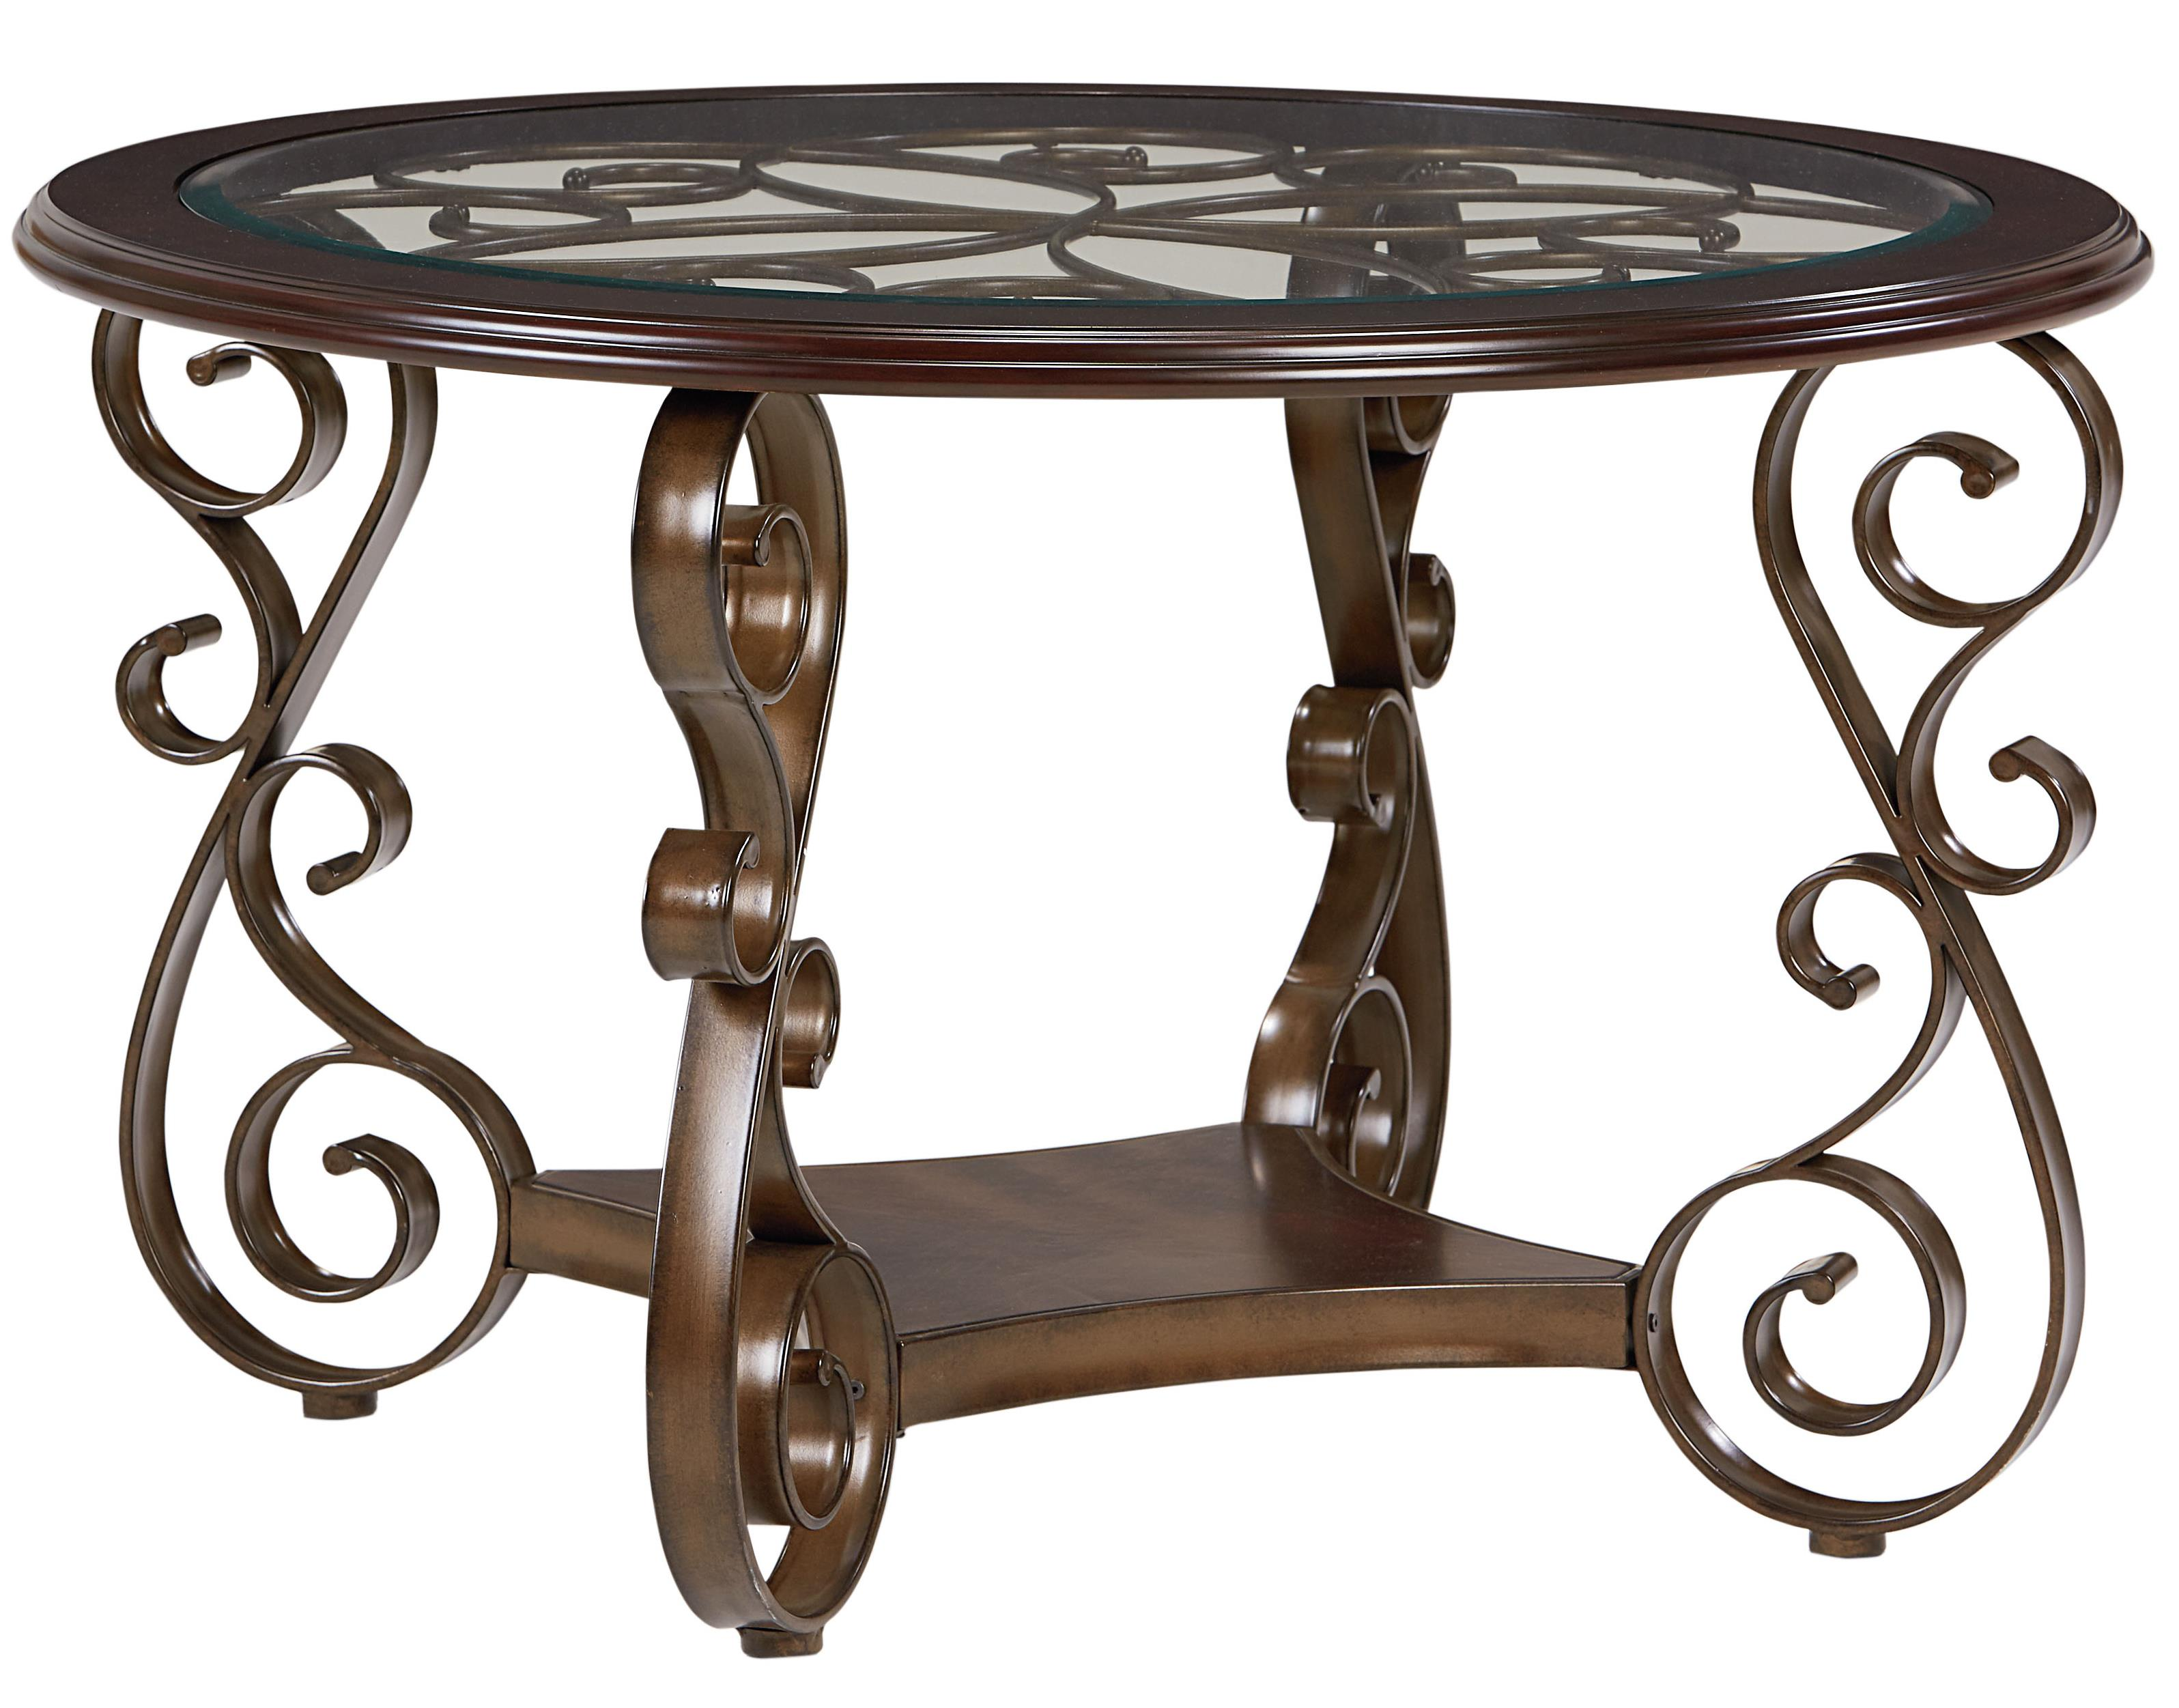 Scrolled Metal And Wood Coffee Table - Round dining table with metal scroll pattern